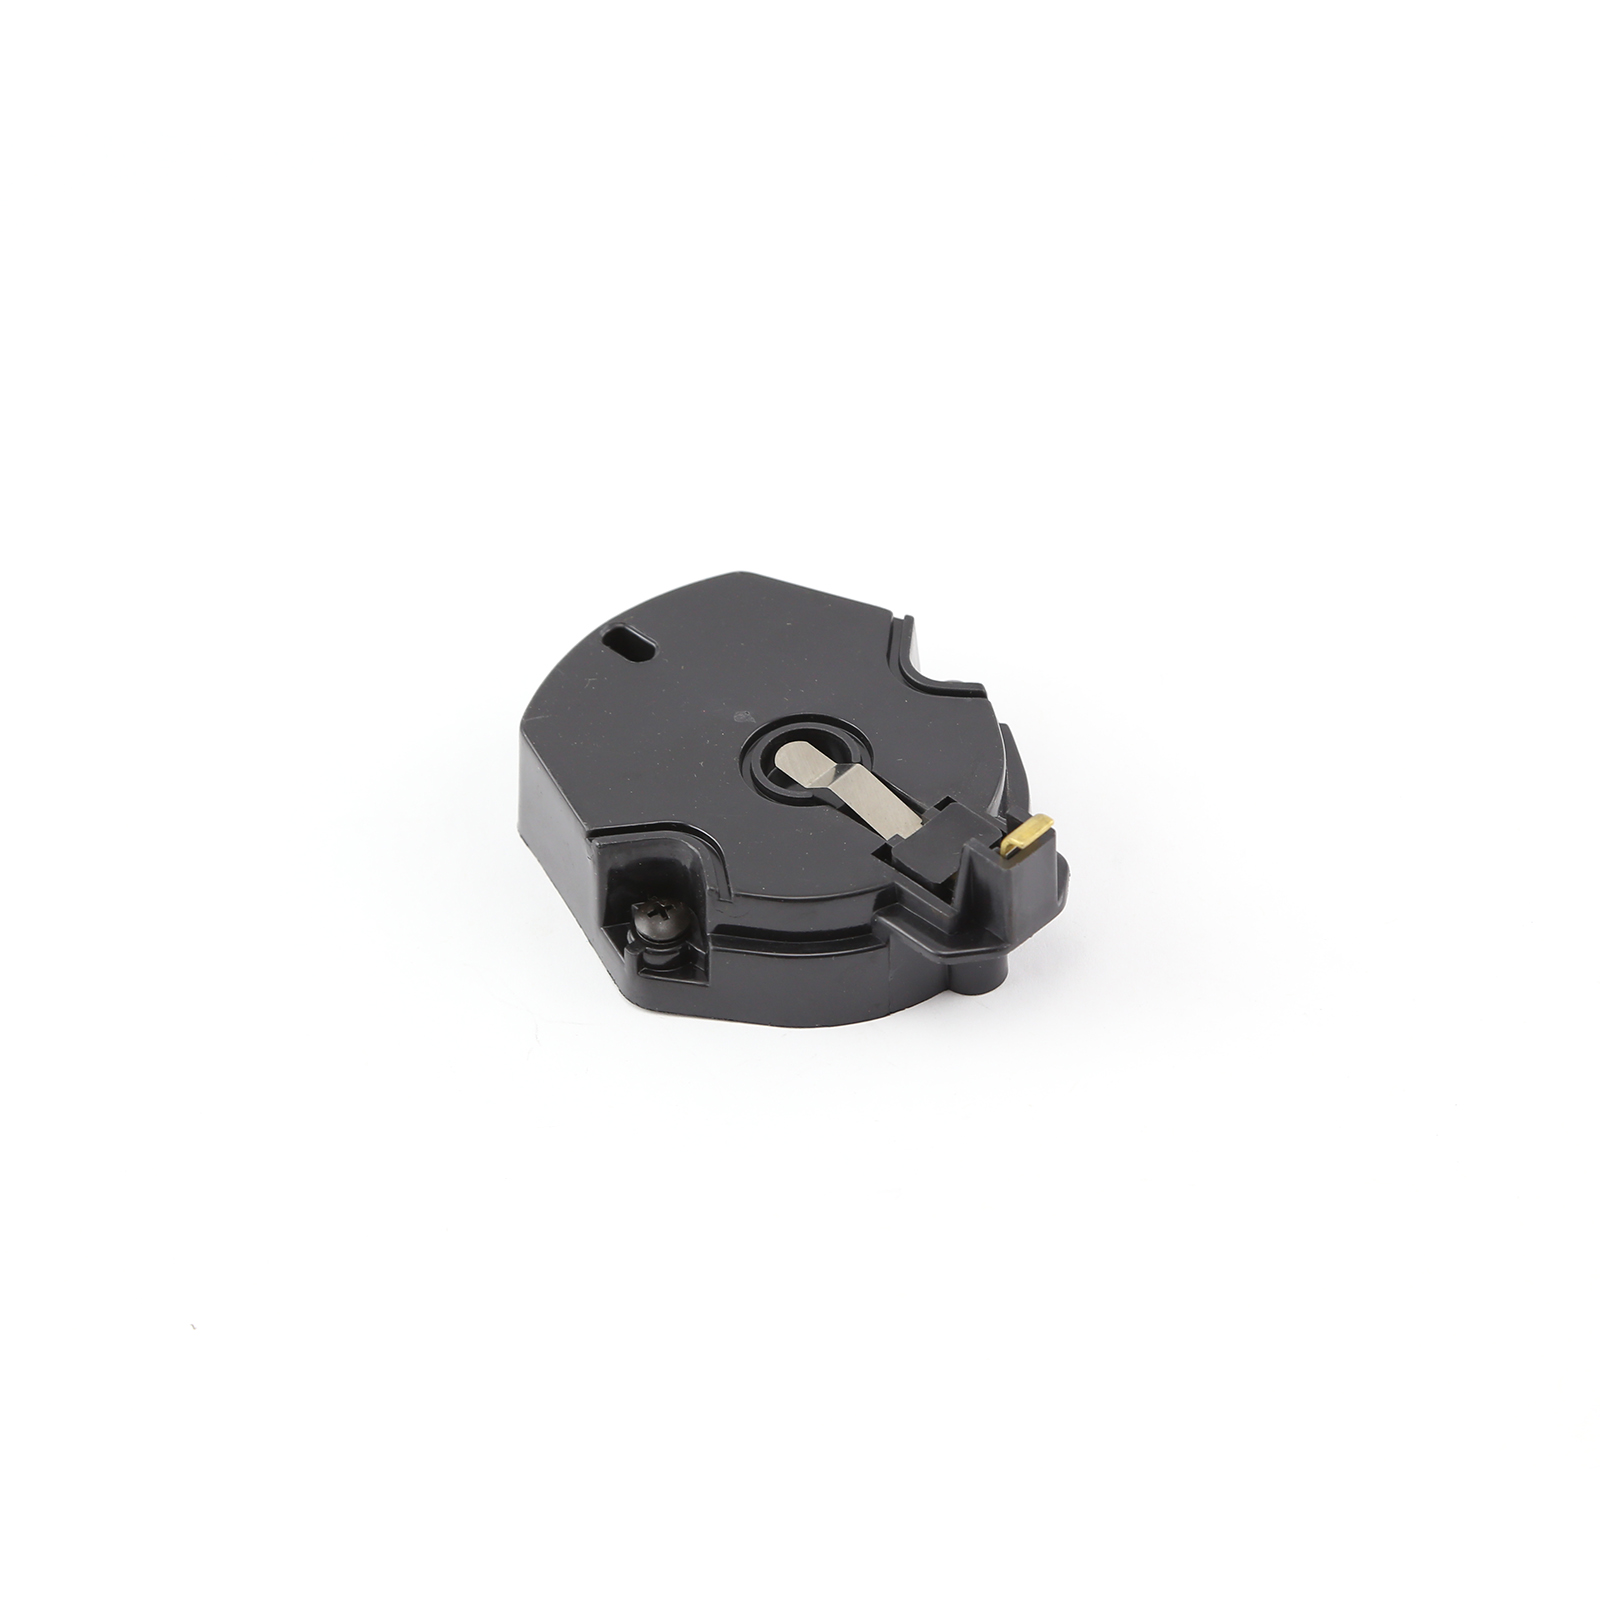 6000 Series HEI Distributor Rotor - Black